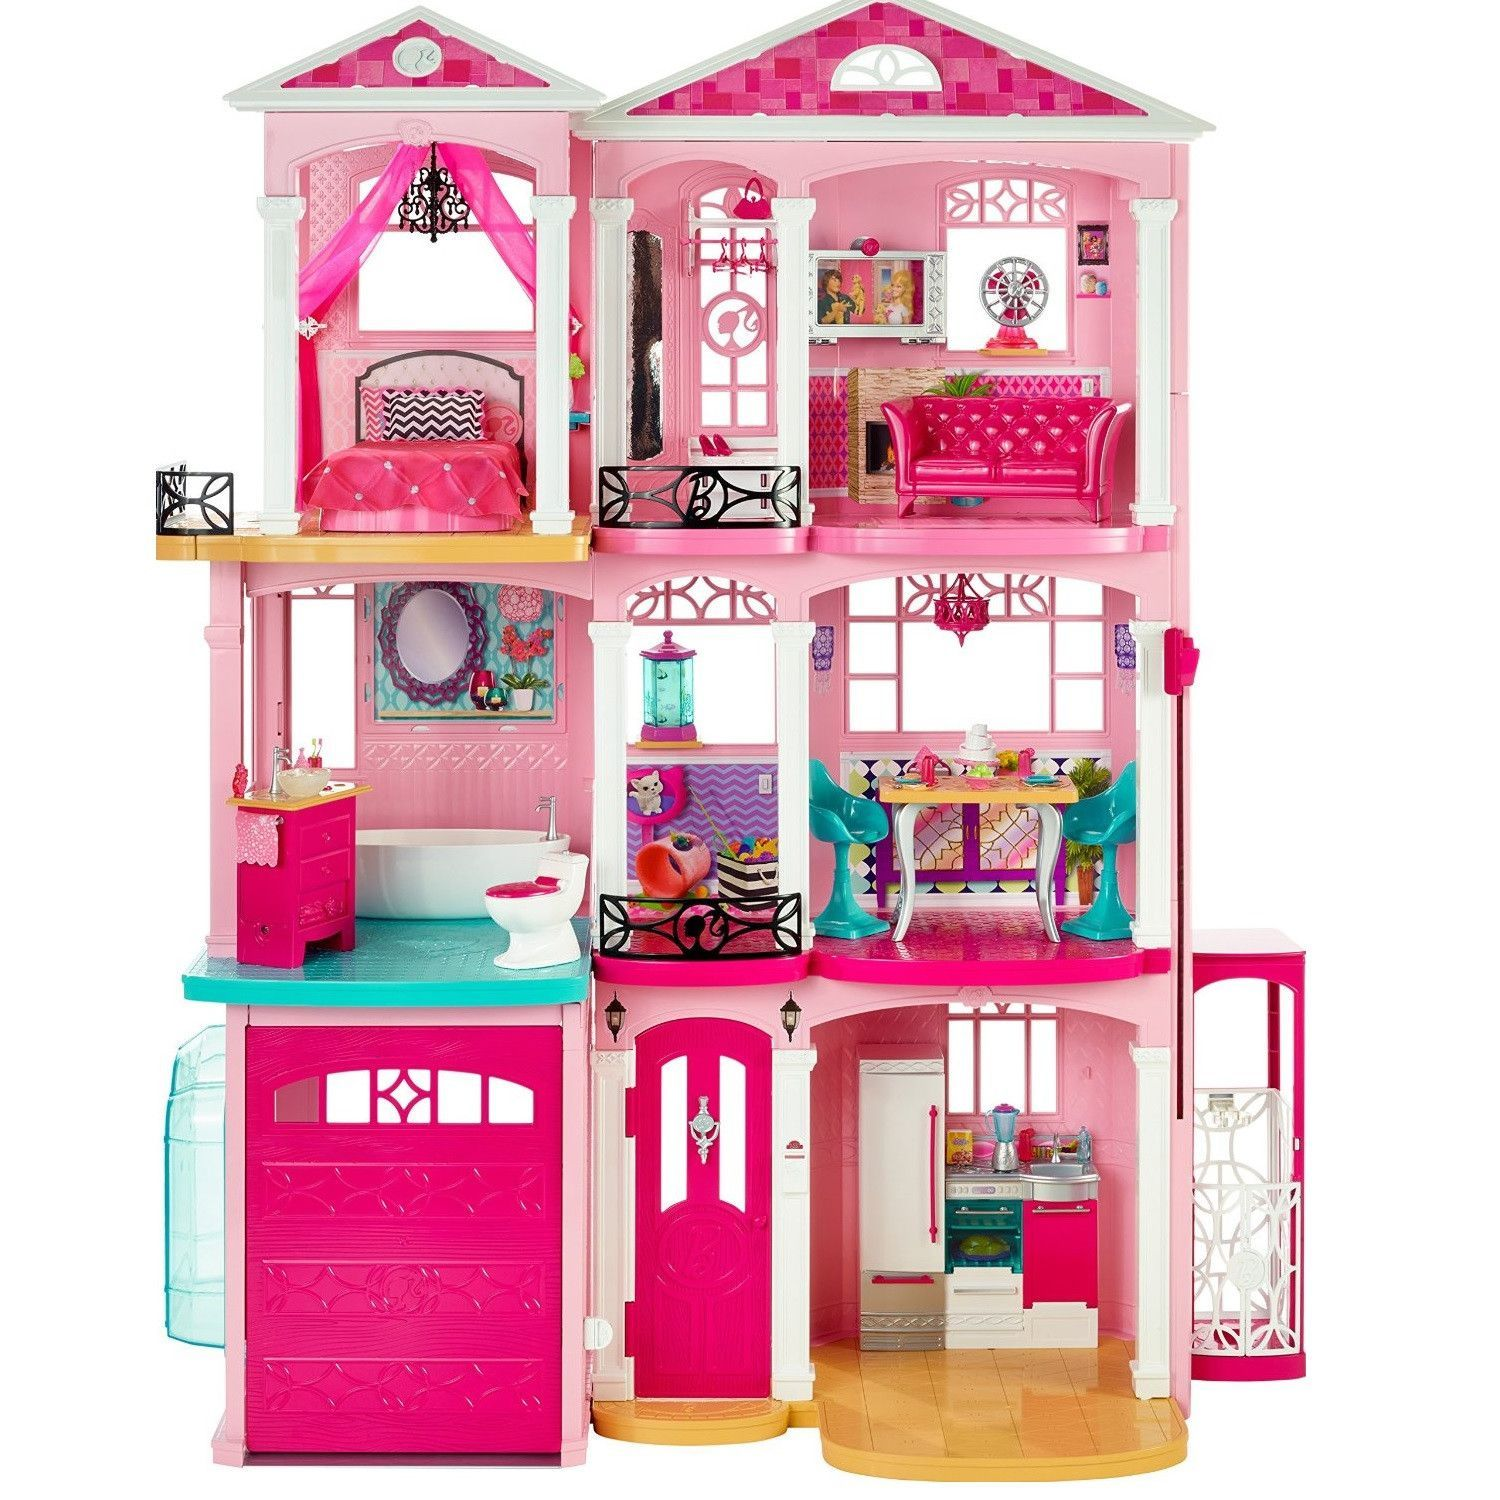 Barbie deluxe furniture stovetop to tabletop kitchen doll target - Barbie Dream House Dollhouse